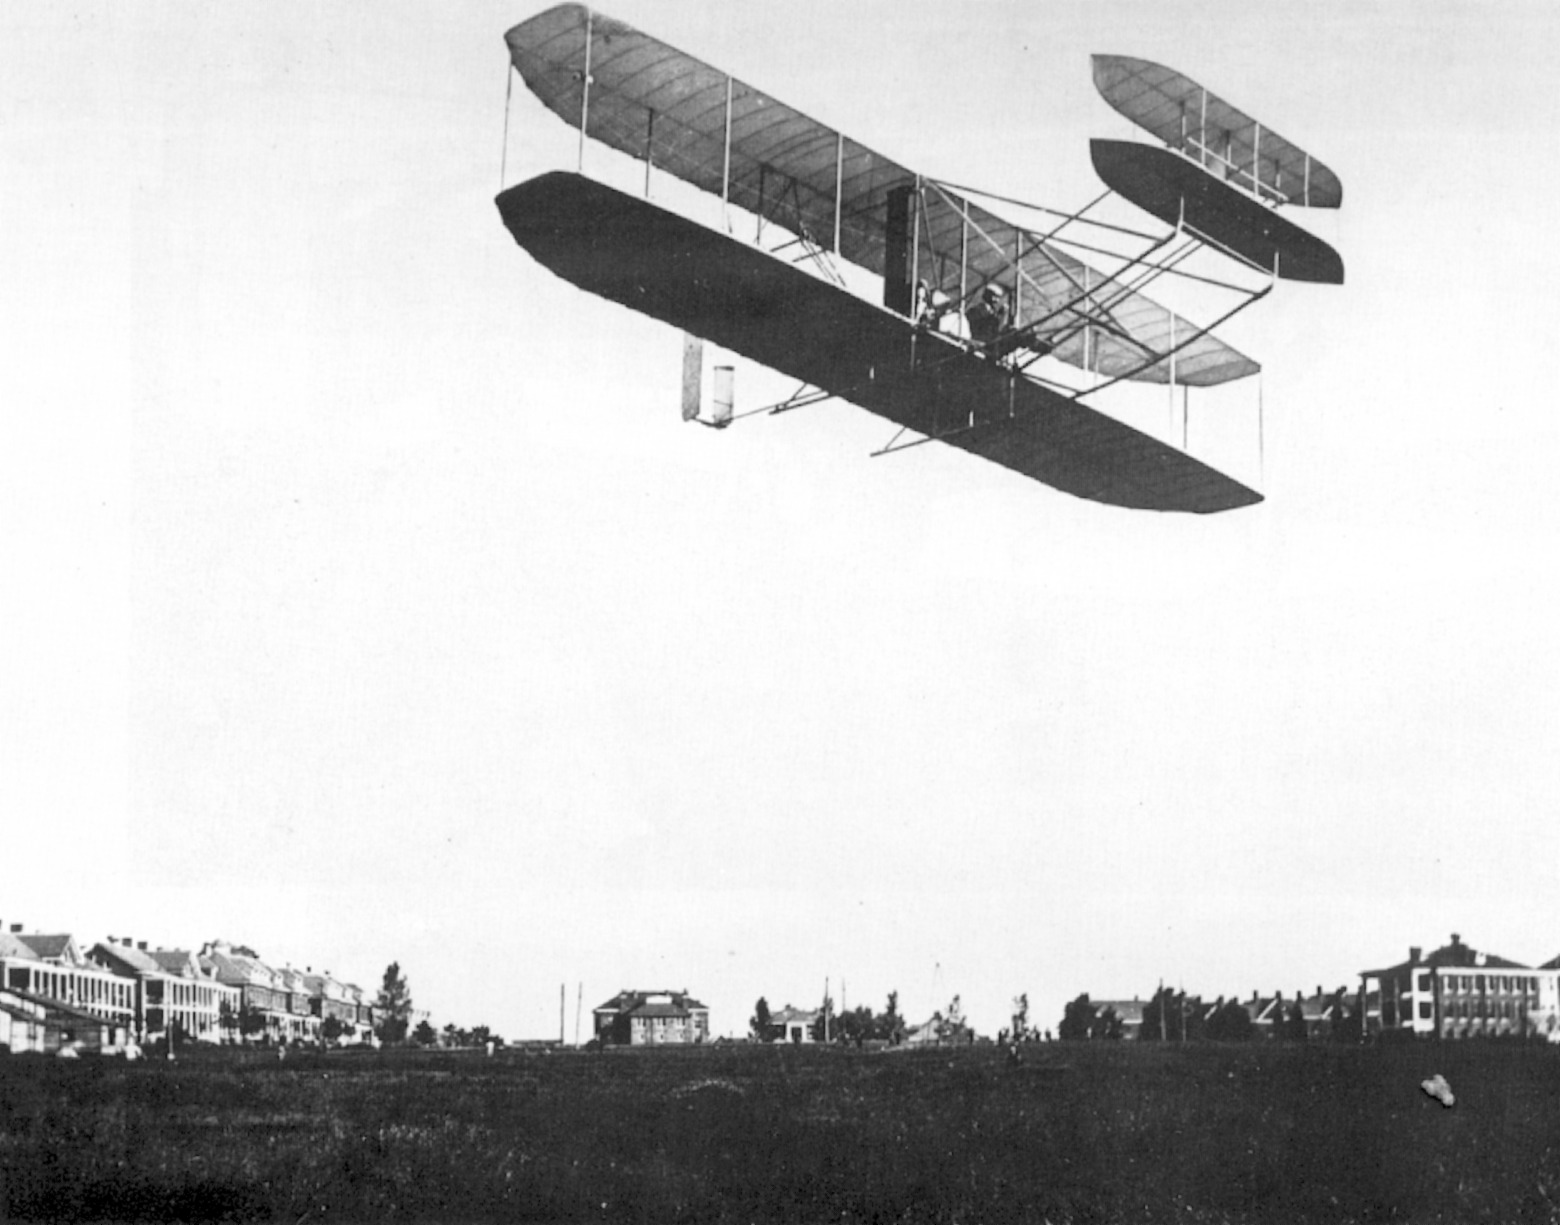 Wright Photos Simple Free Body Diagram Galleryhipcom The Hippest Galleries 1908 Orville Flies Military Flyer At Fort Myer Virginia He Begins To Put Aircraft Through Several Trials Prove Its Performance